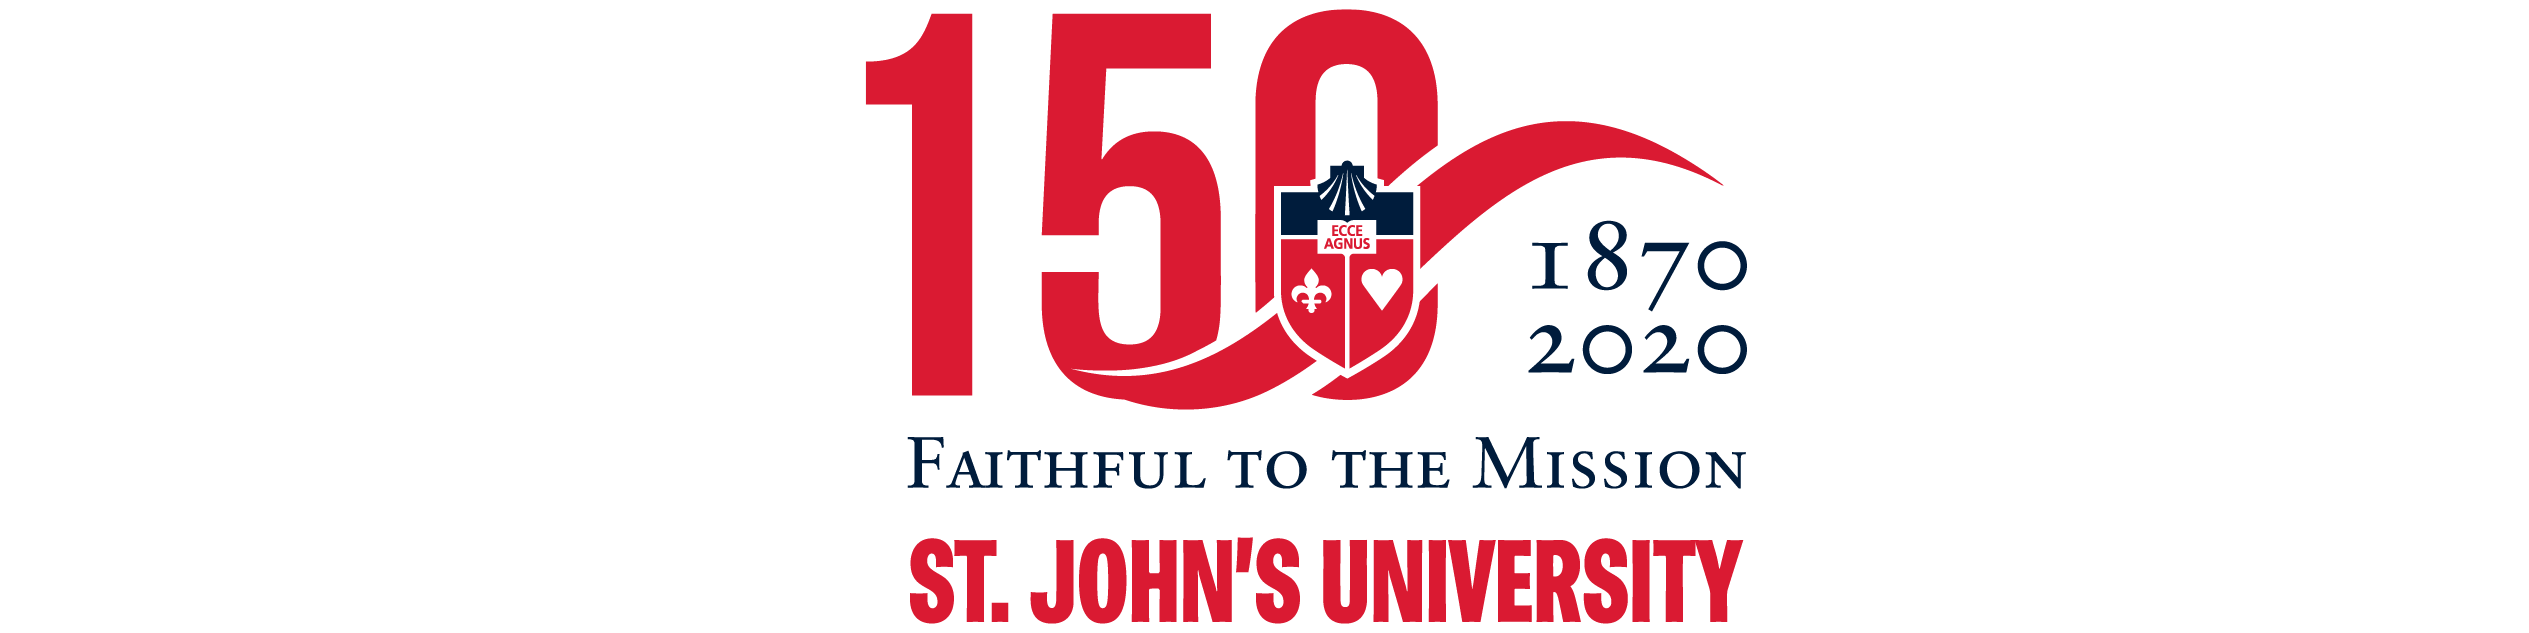 St. John's University 150th Logo